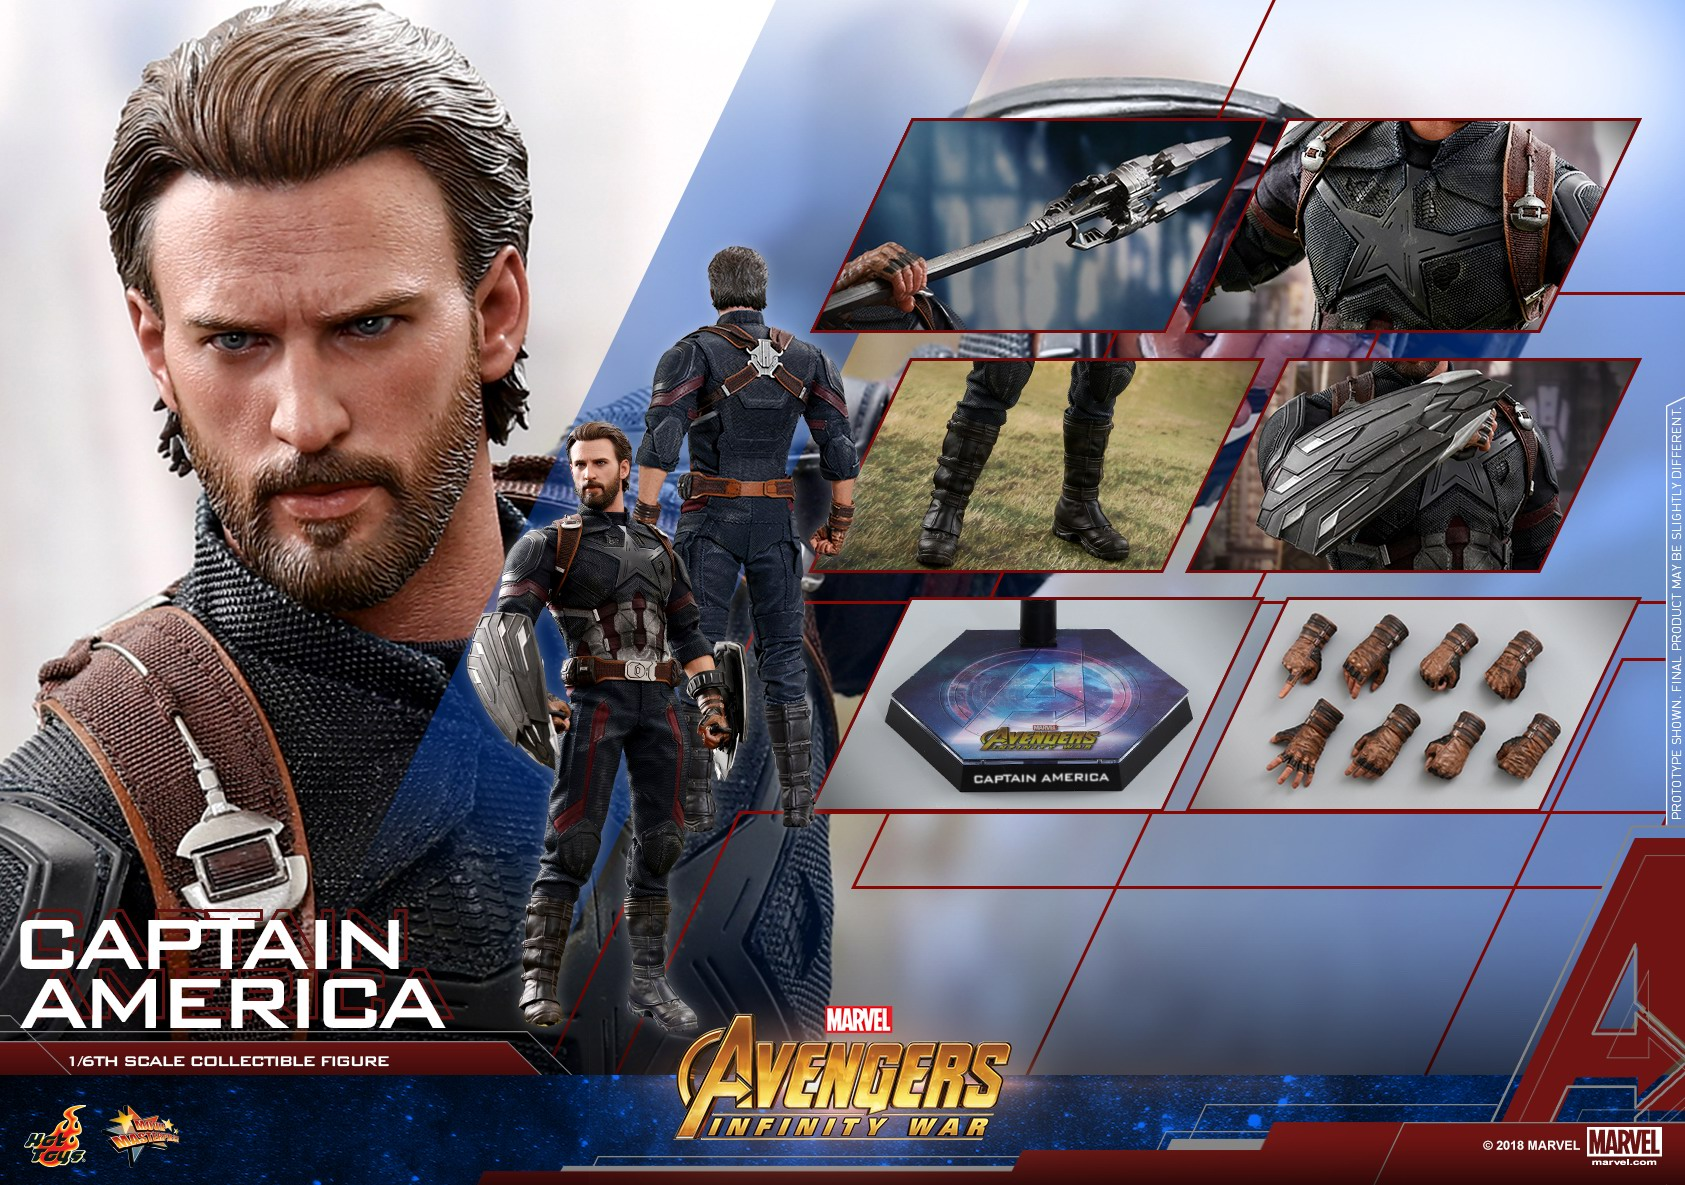 Hot-Toys-AIW-Captain-America-collectible-figure_Mystery-Weaspon_PR03.jpg